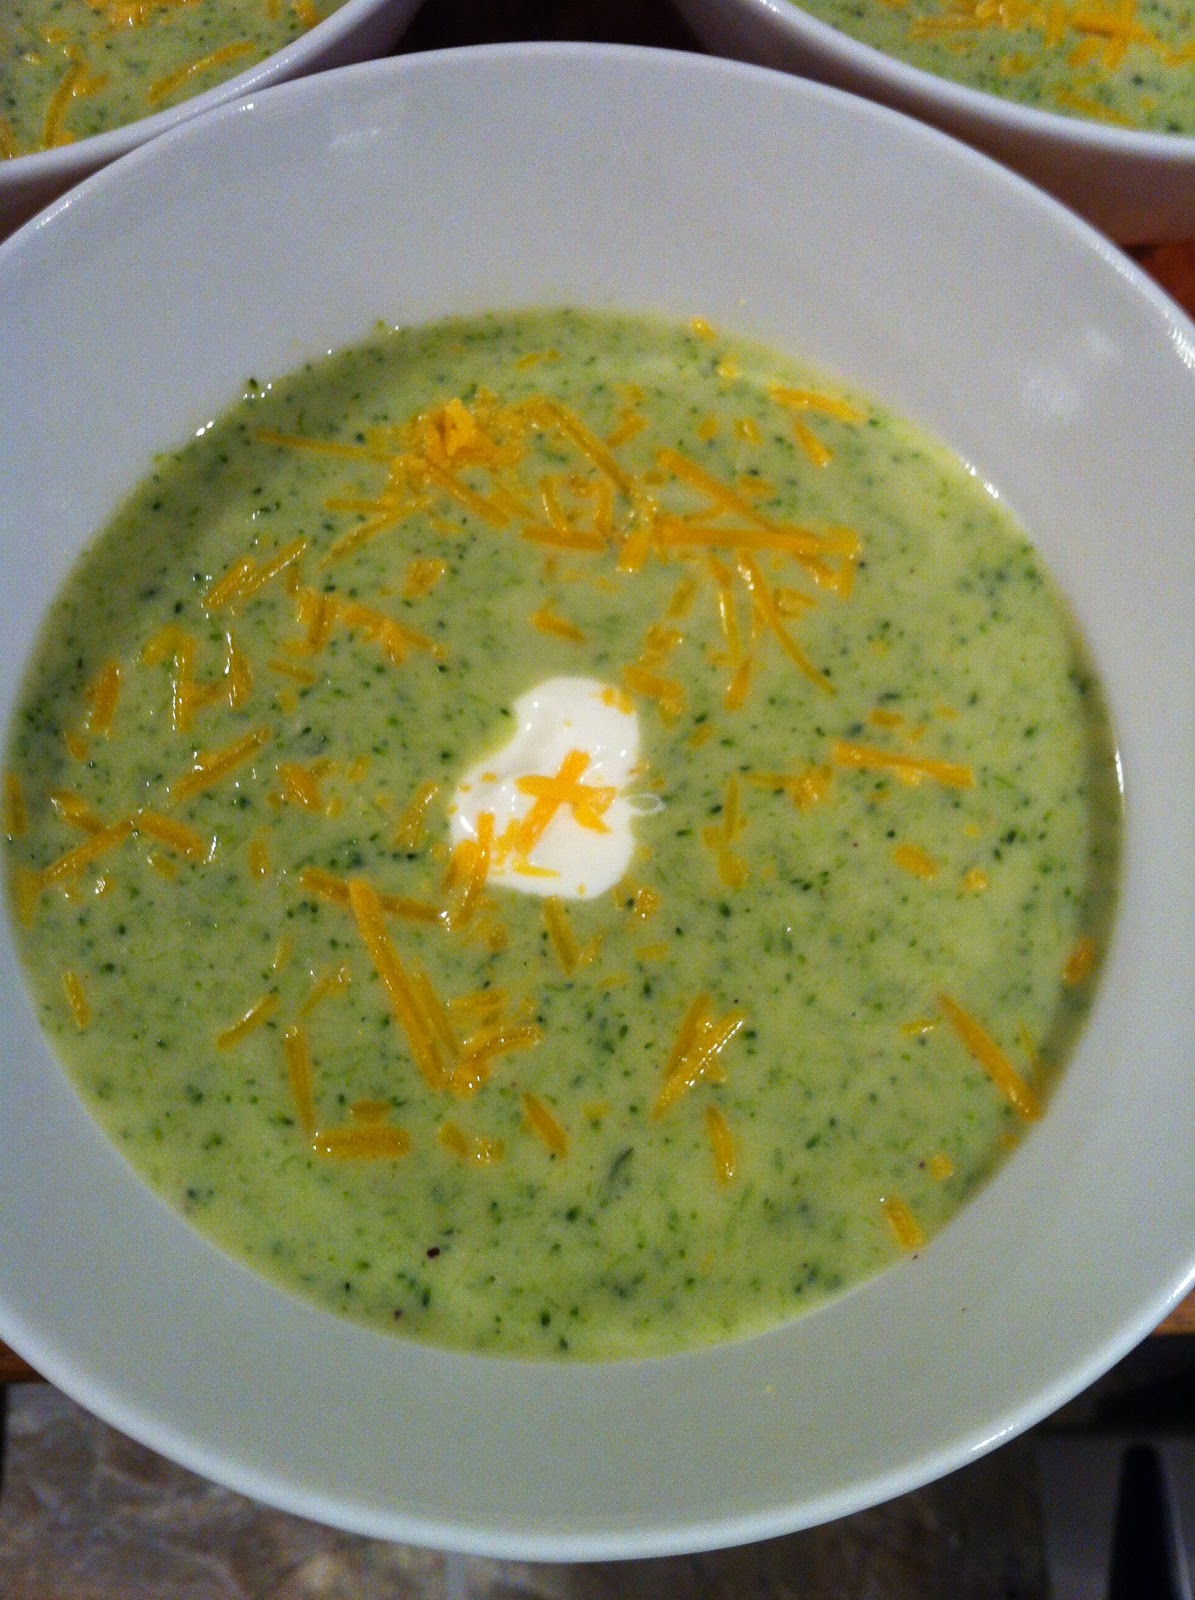 Counting Up with P10!: Cream of Broccoli Soup